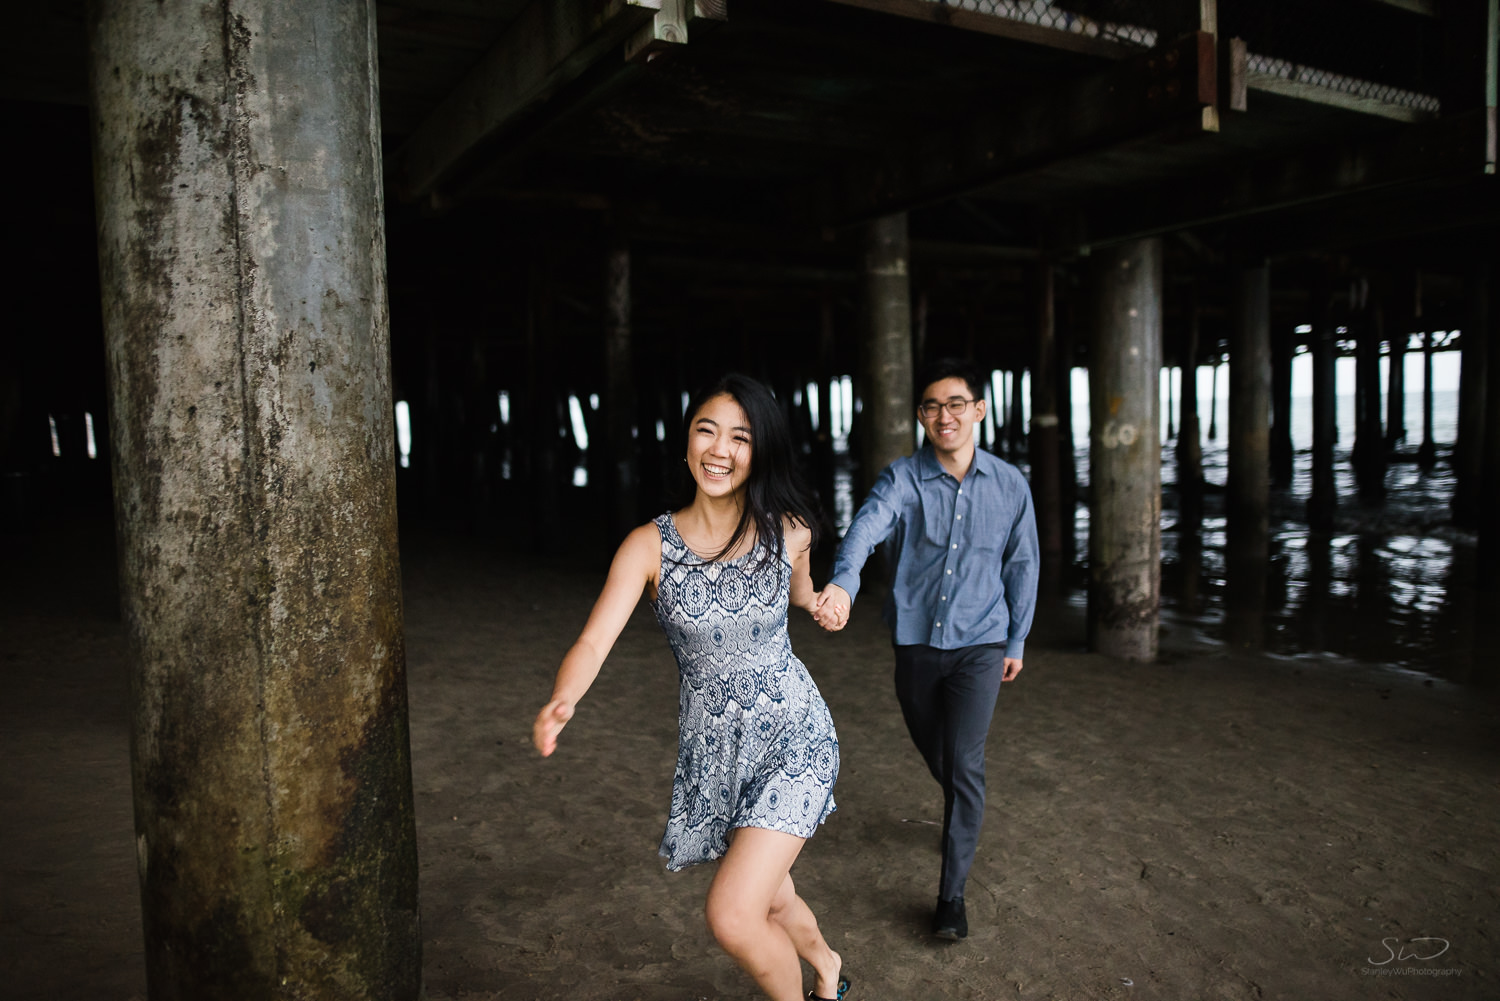 downtown-santa-monica-pier-and-beach-engagement-stanley-wu-photography-los-angeles-portrait-and-wedding-photographer-57.jpg